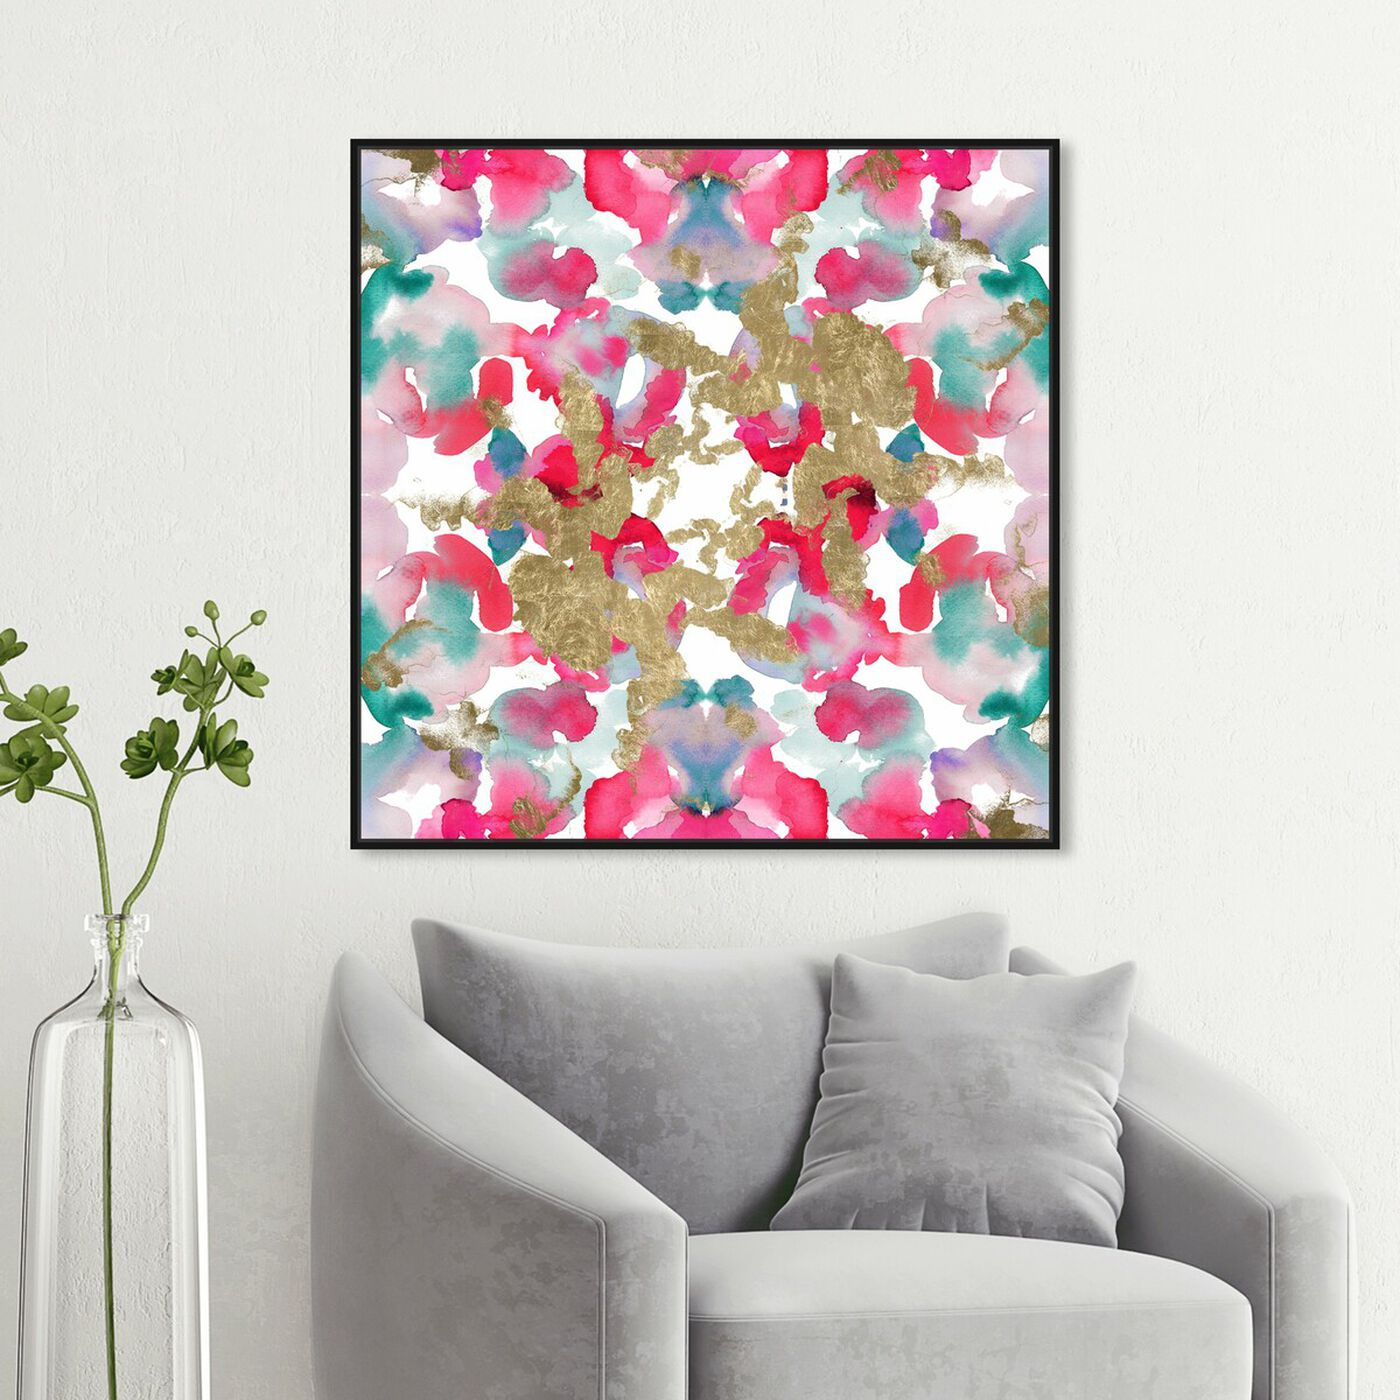 Hanging view of Excitement Gold featuring abstract and watercolor art.